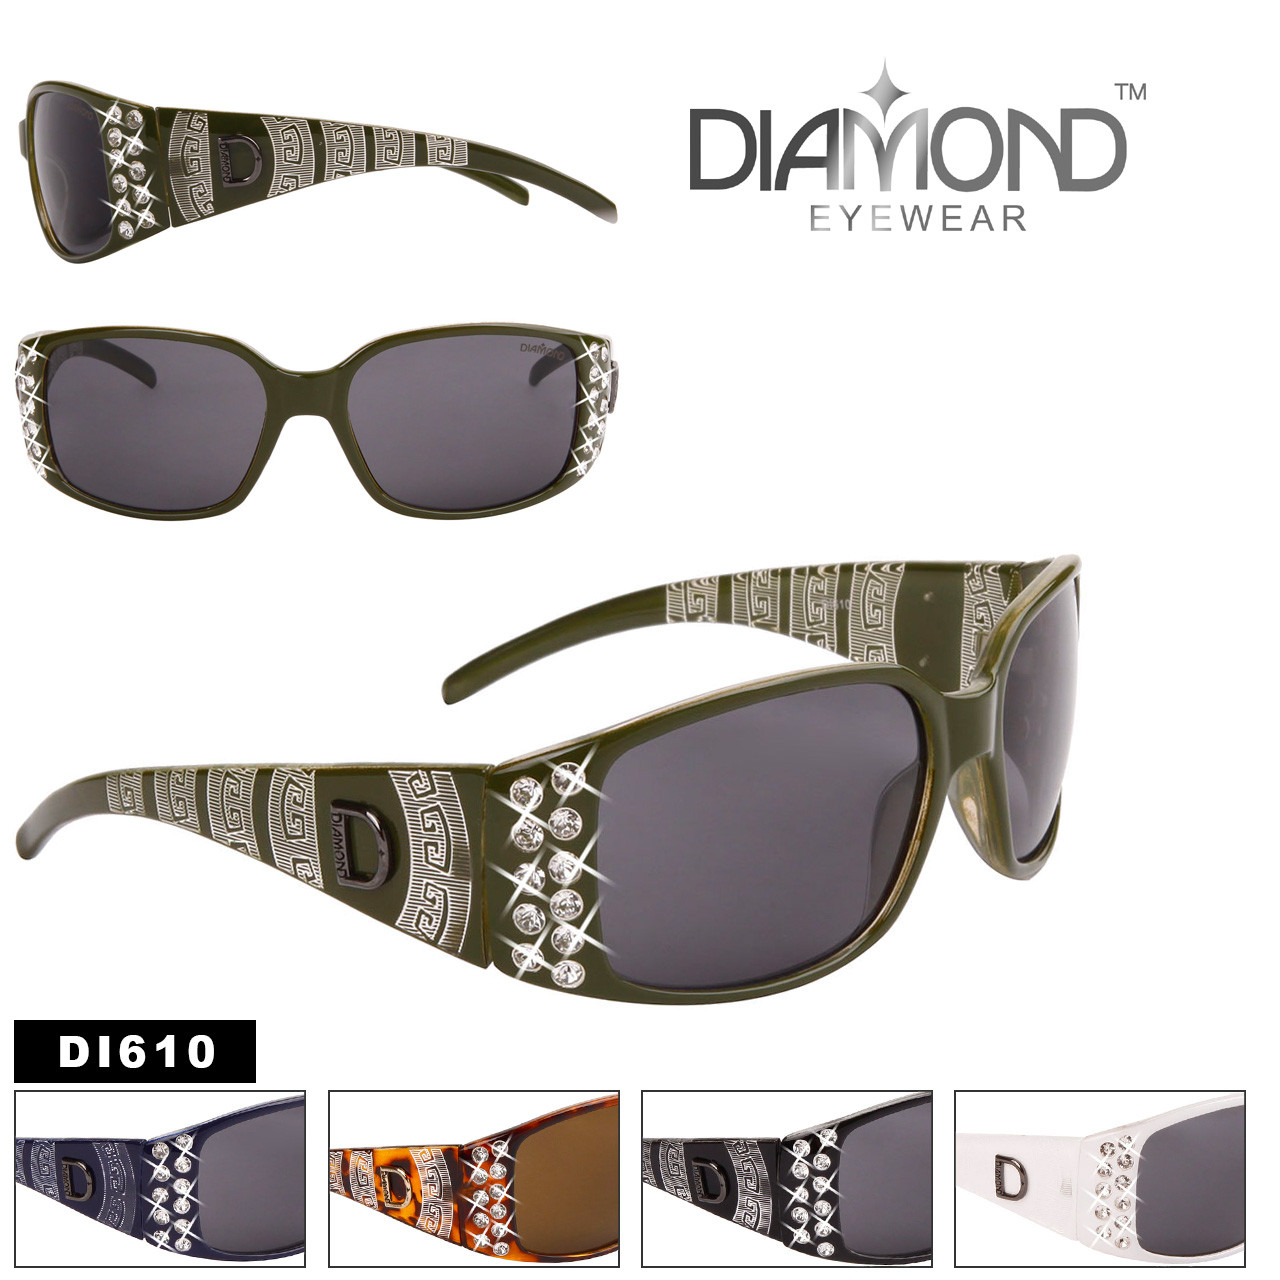 Diamond™ Rhinestone Etched Temple Sunglasses - Style #DI610 (Assorted Colors) (12 pcs.)